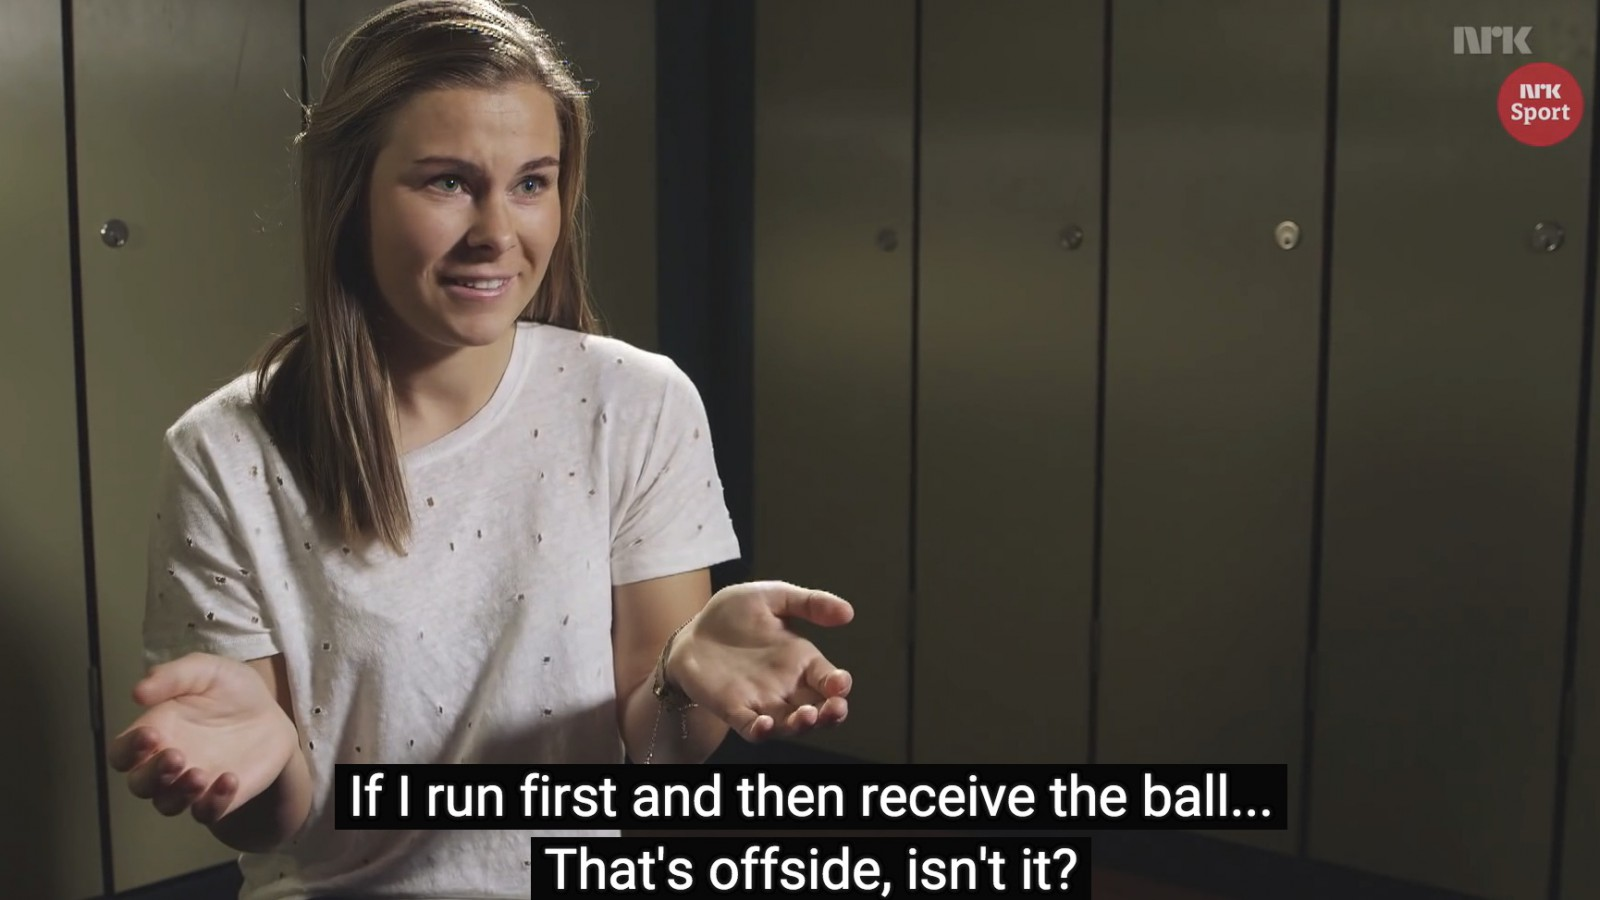 Screenshot from NRK film about female footballers.